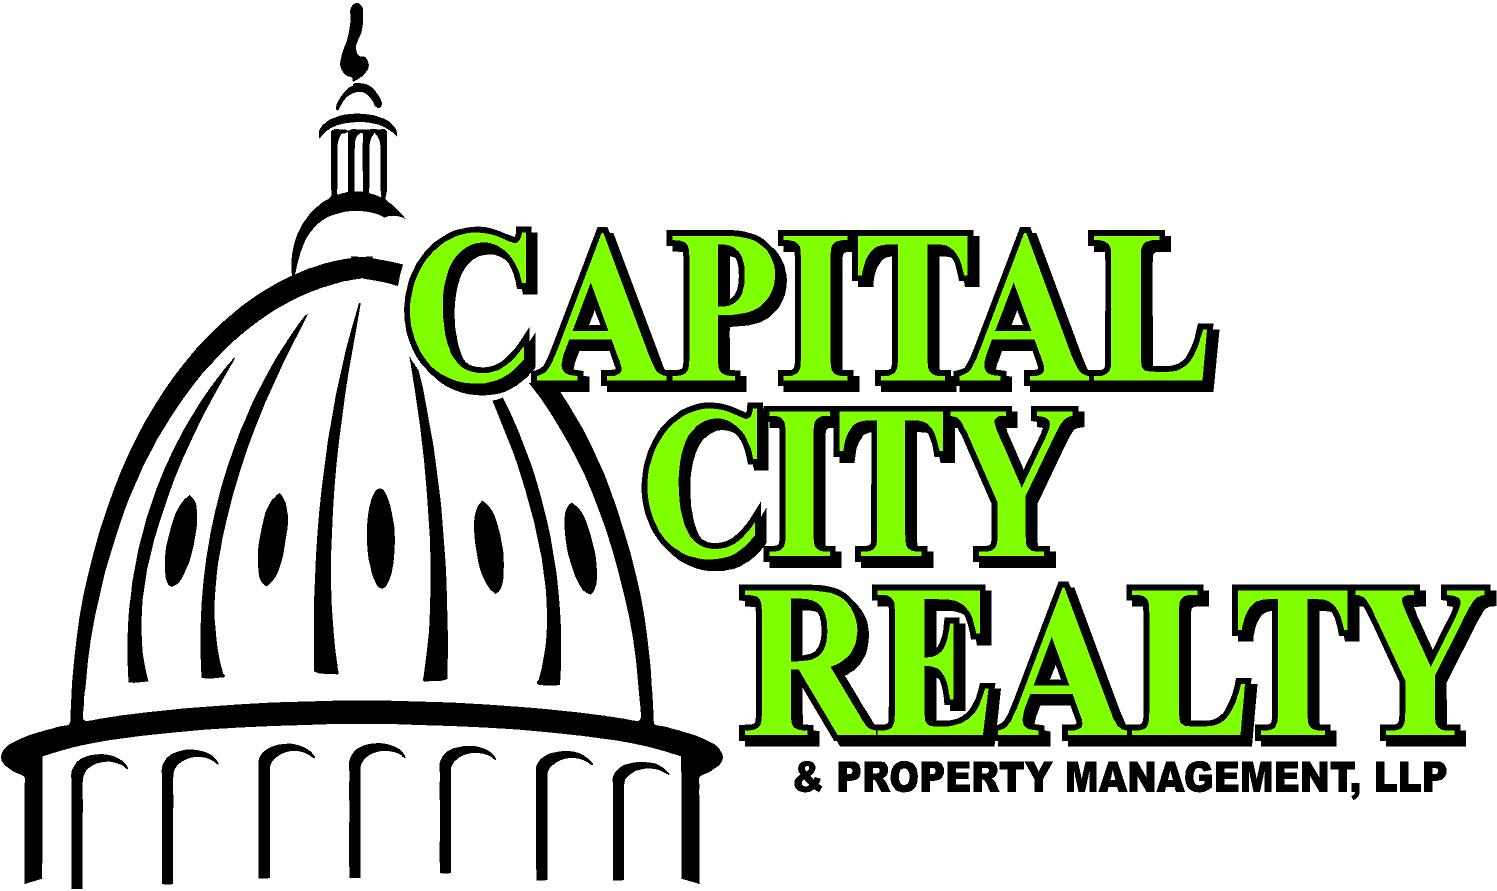 Capital City realty & property management llp. - Great service! Very professional!